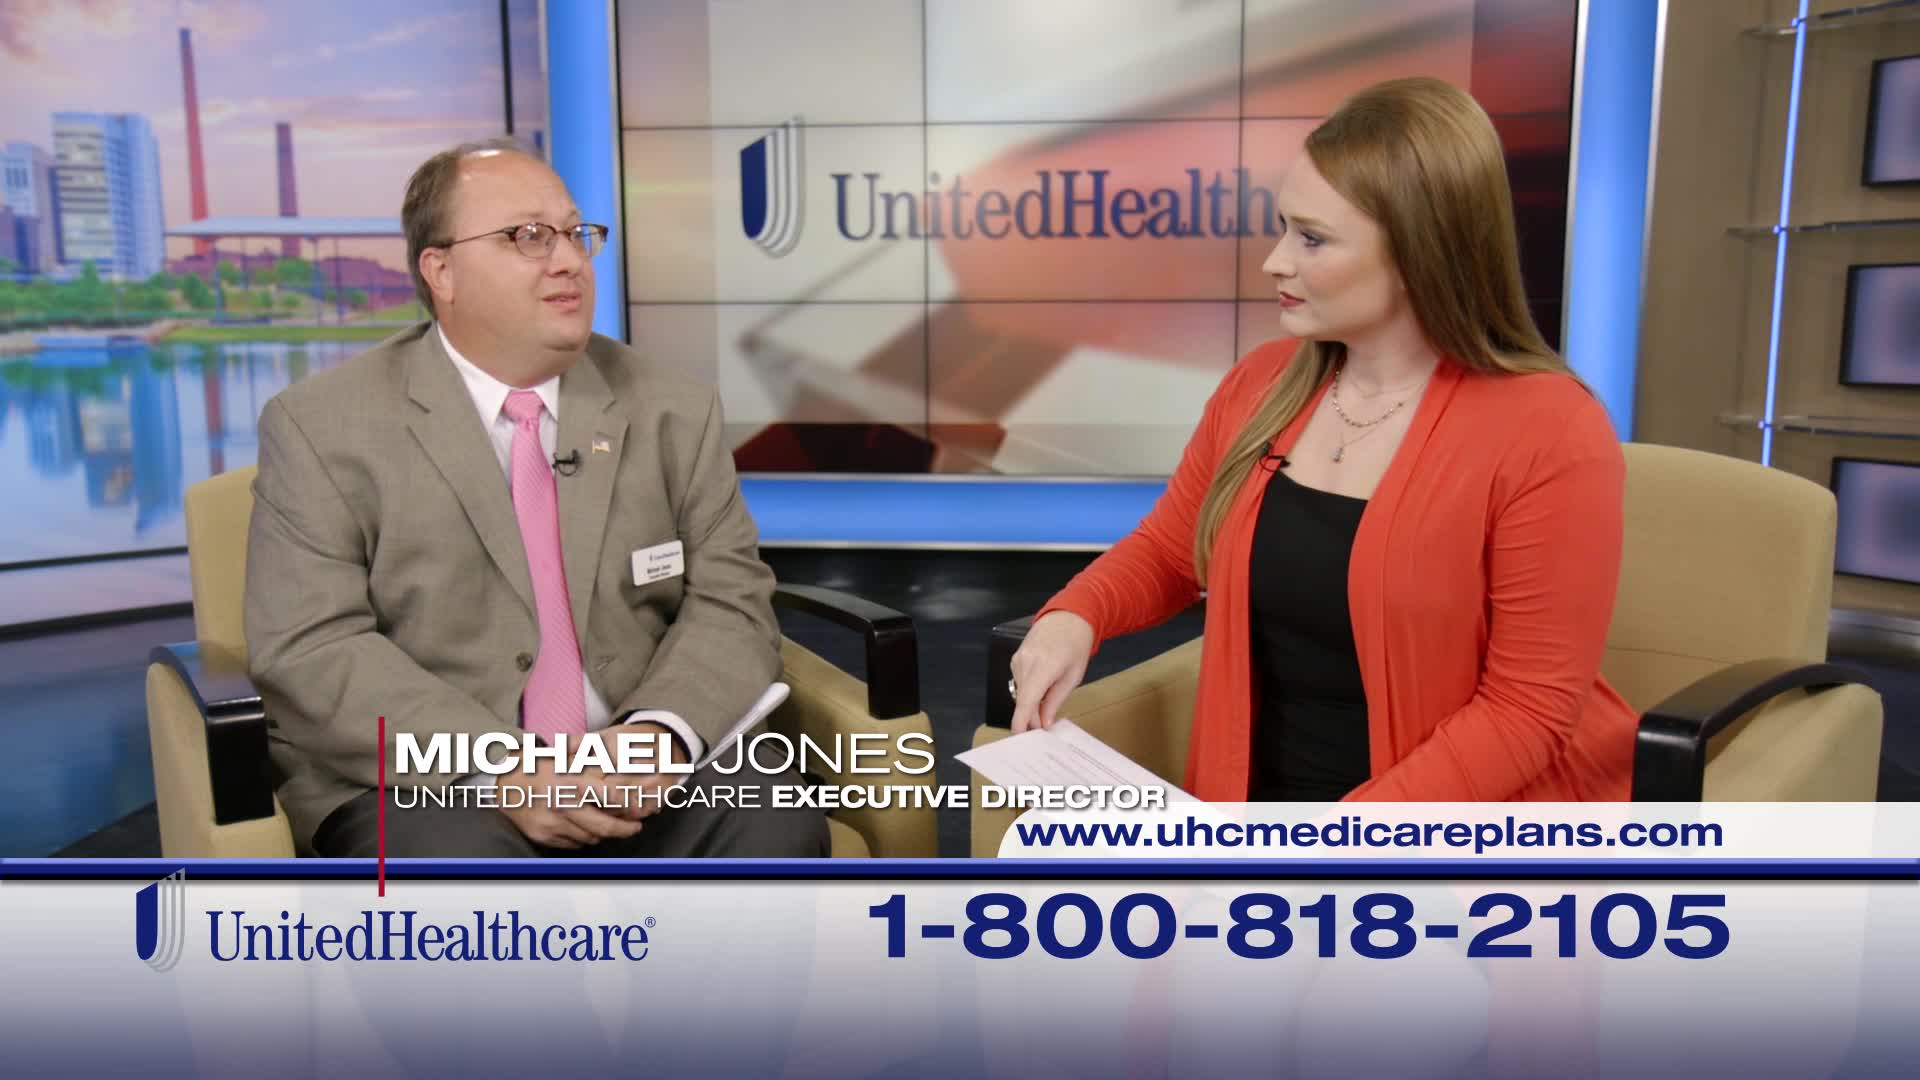 UnitedHealthcare helps simplify plan selection during 2017 Medicare annual election period.